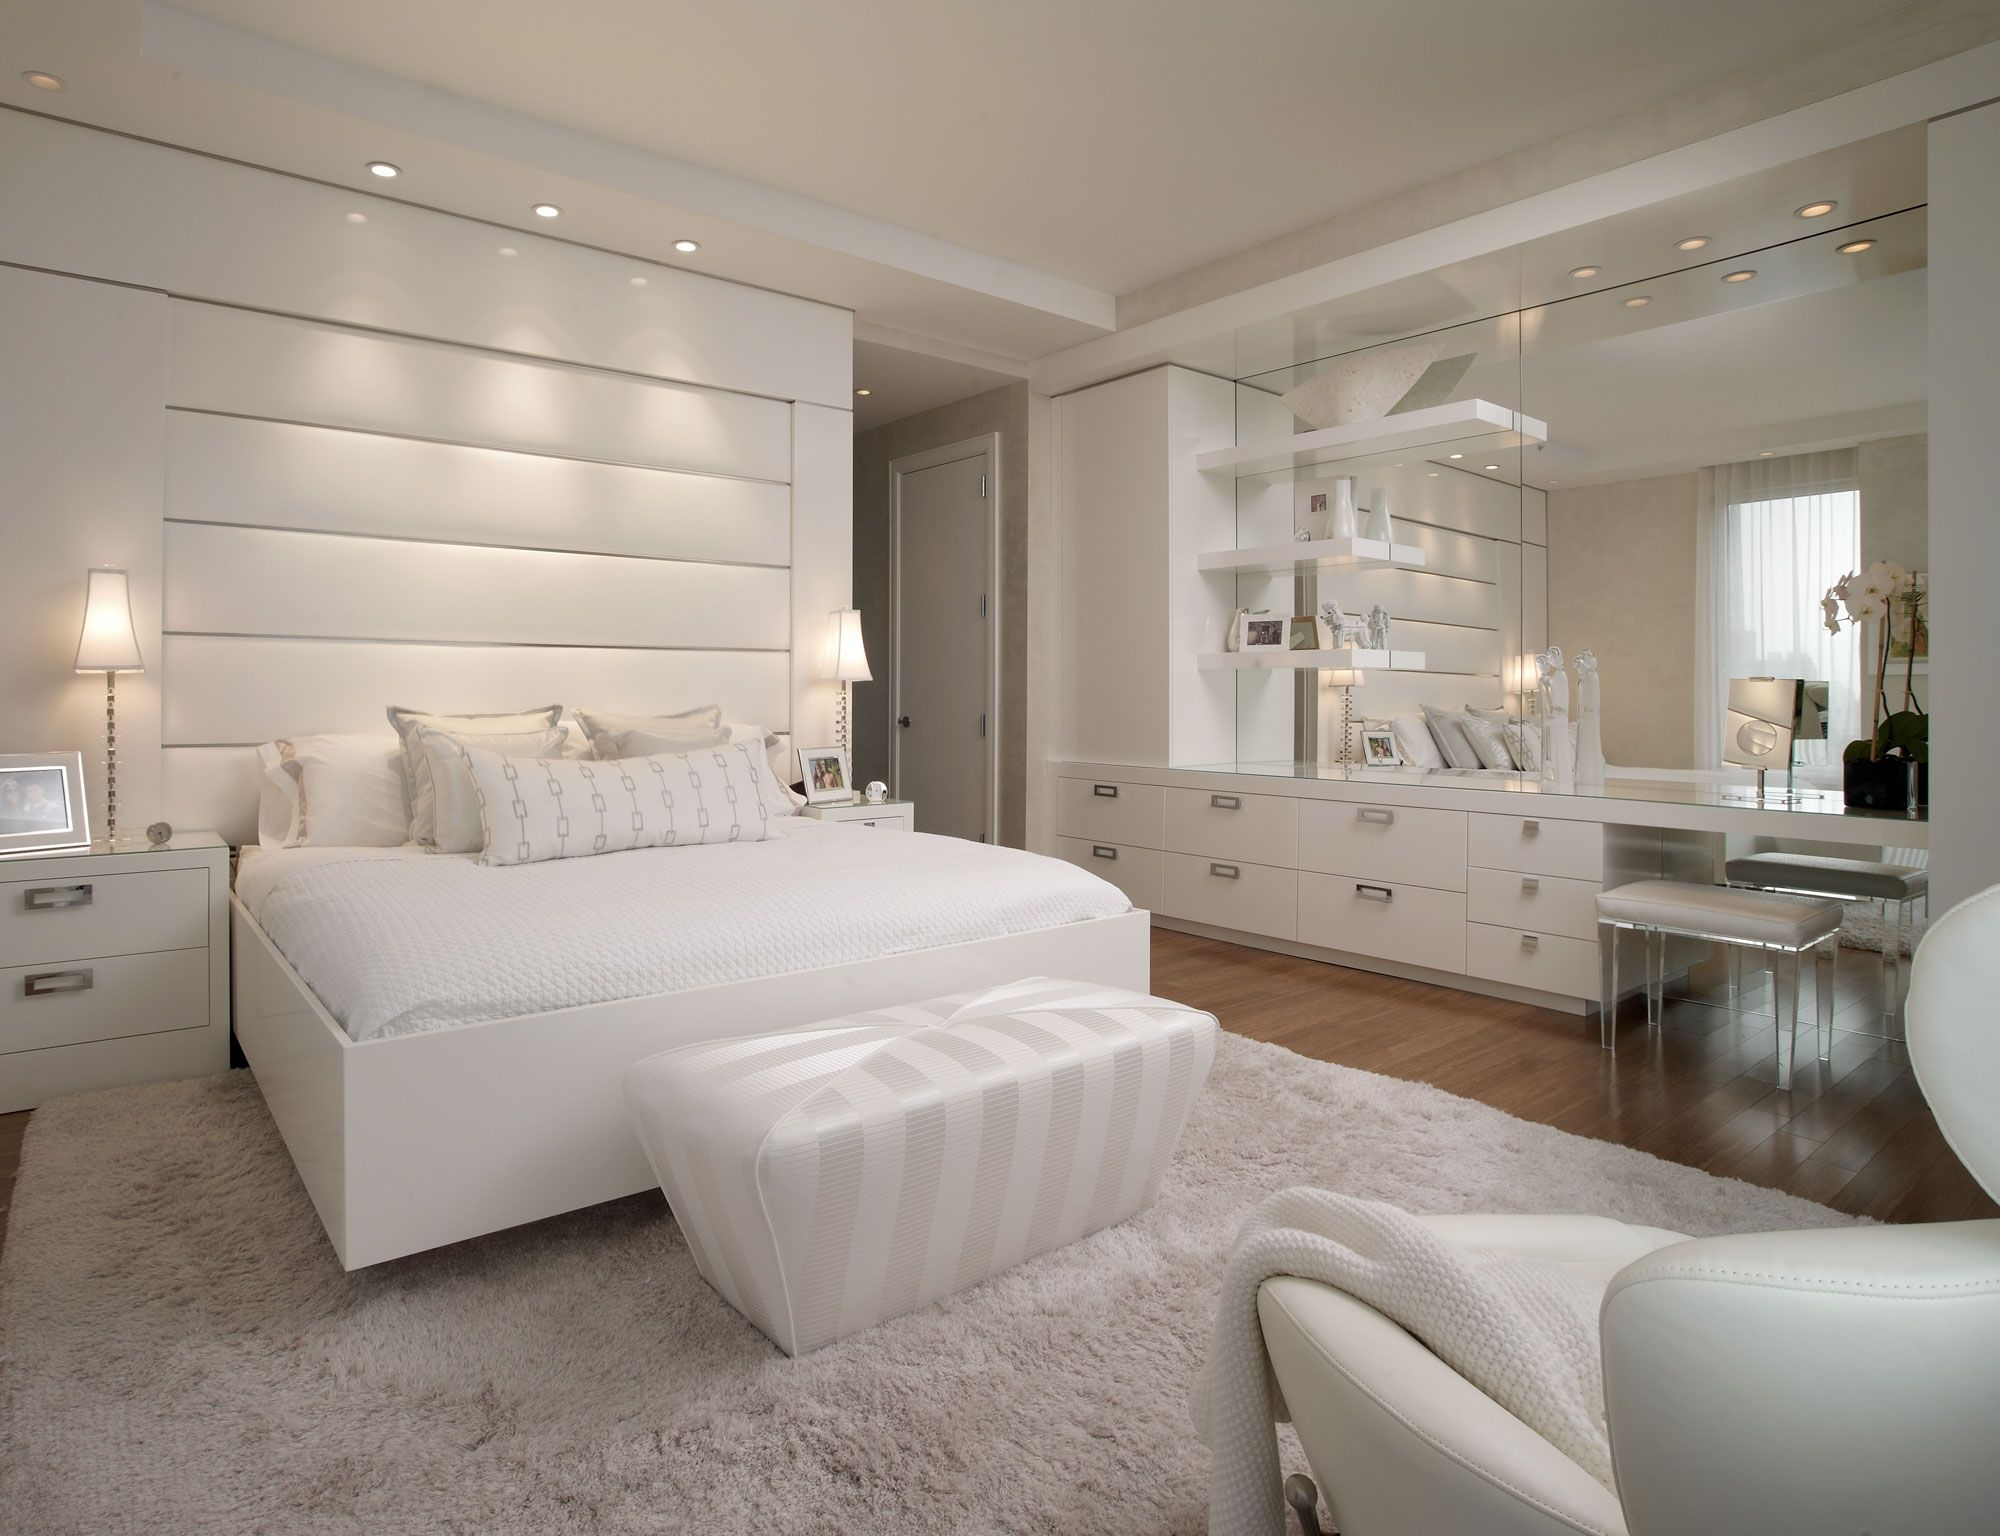 Luxury all white bedroom decorating ideas amazing for New master bedroom ideas